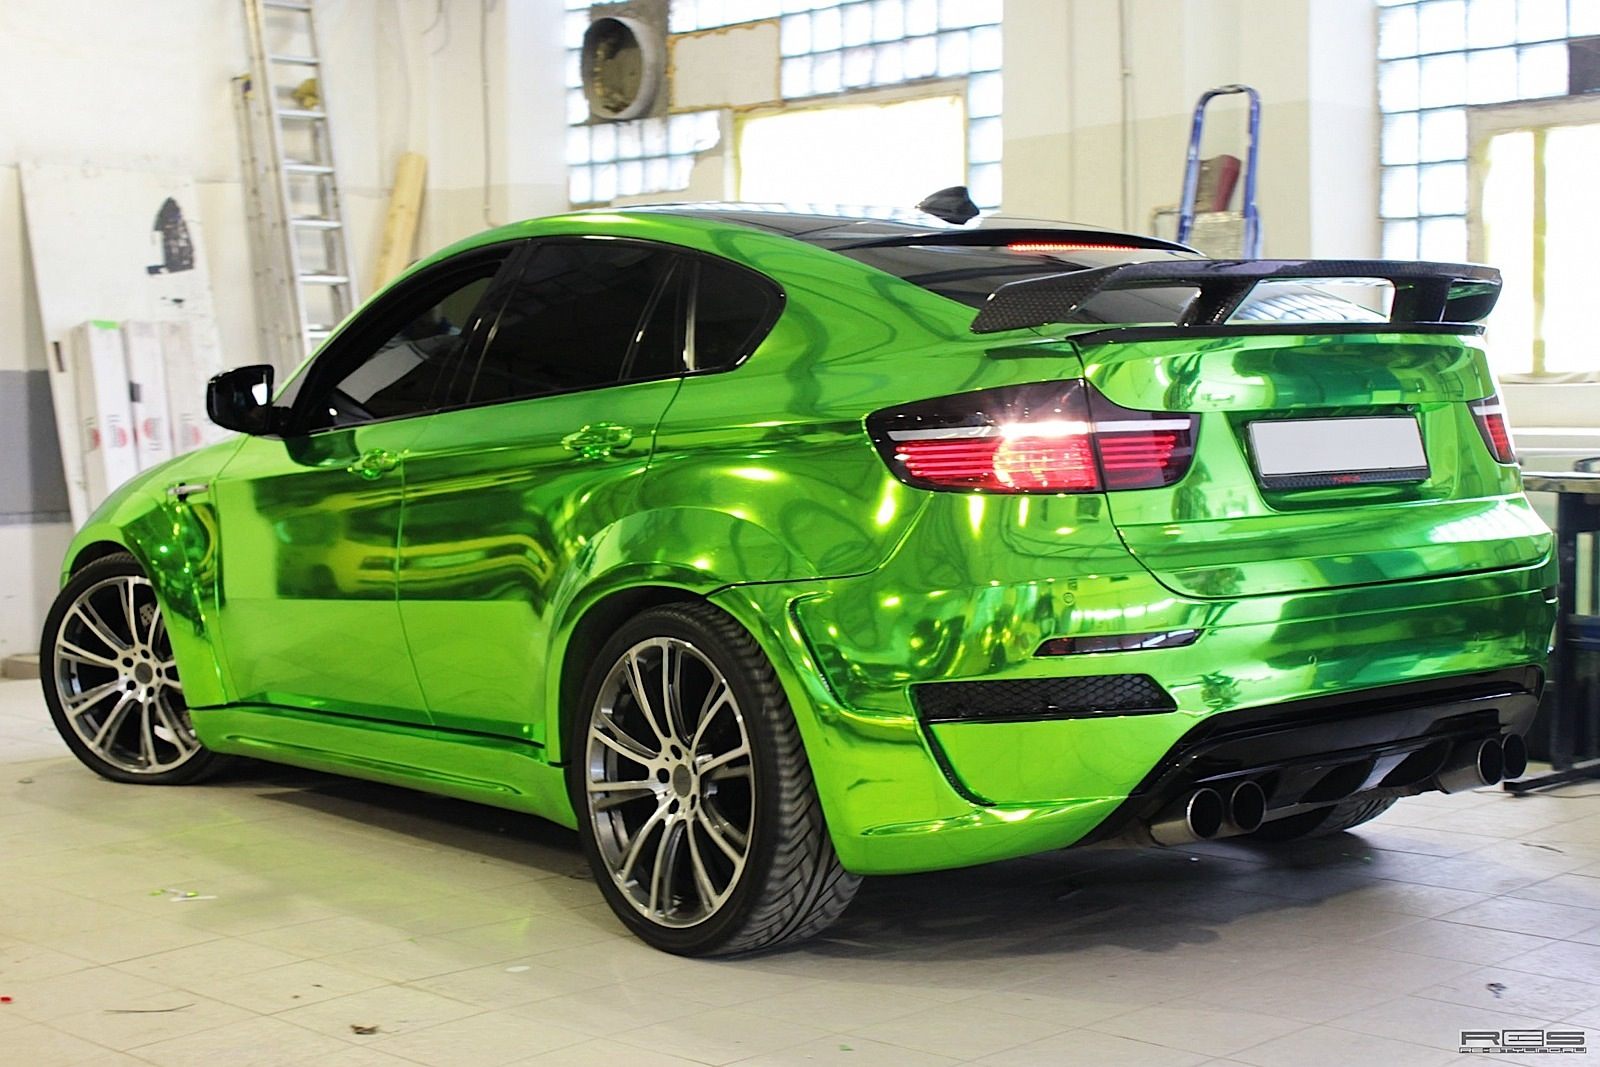 http://s1.cdn.autoevolution.com/images/news/gallery/bmw-x6-m-chrome-hulk-photo-gallery_12.jpg